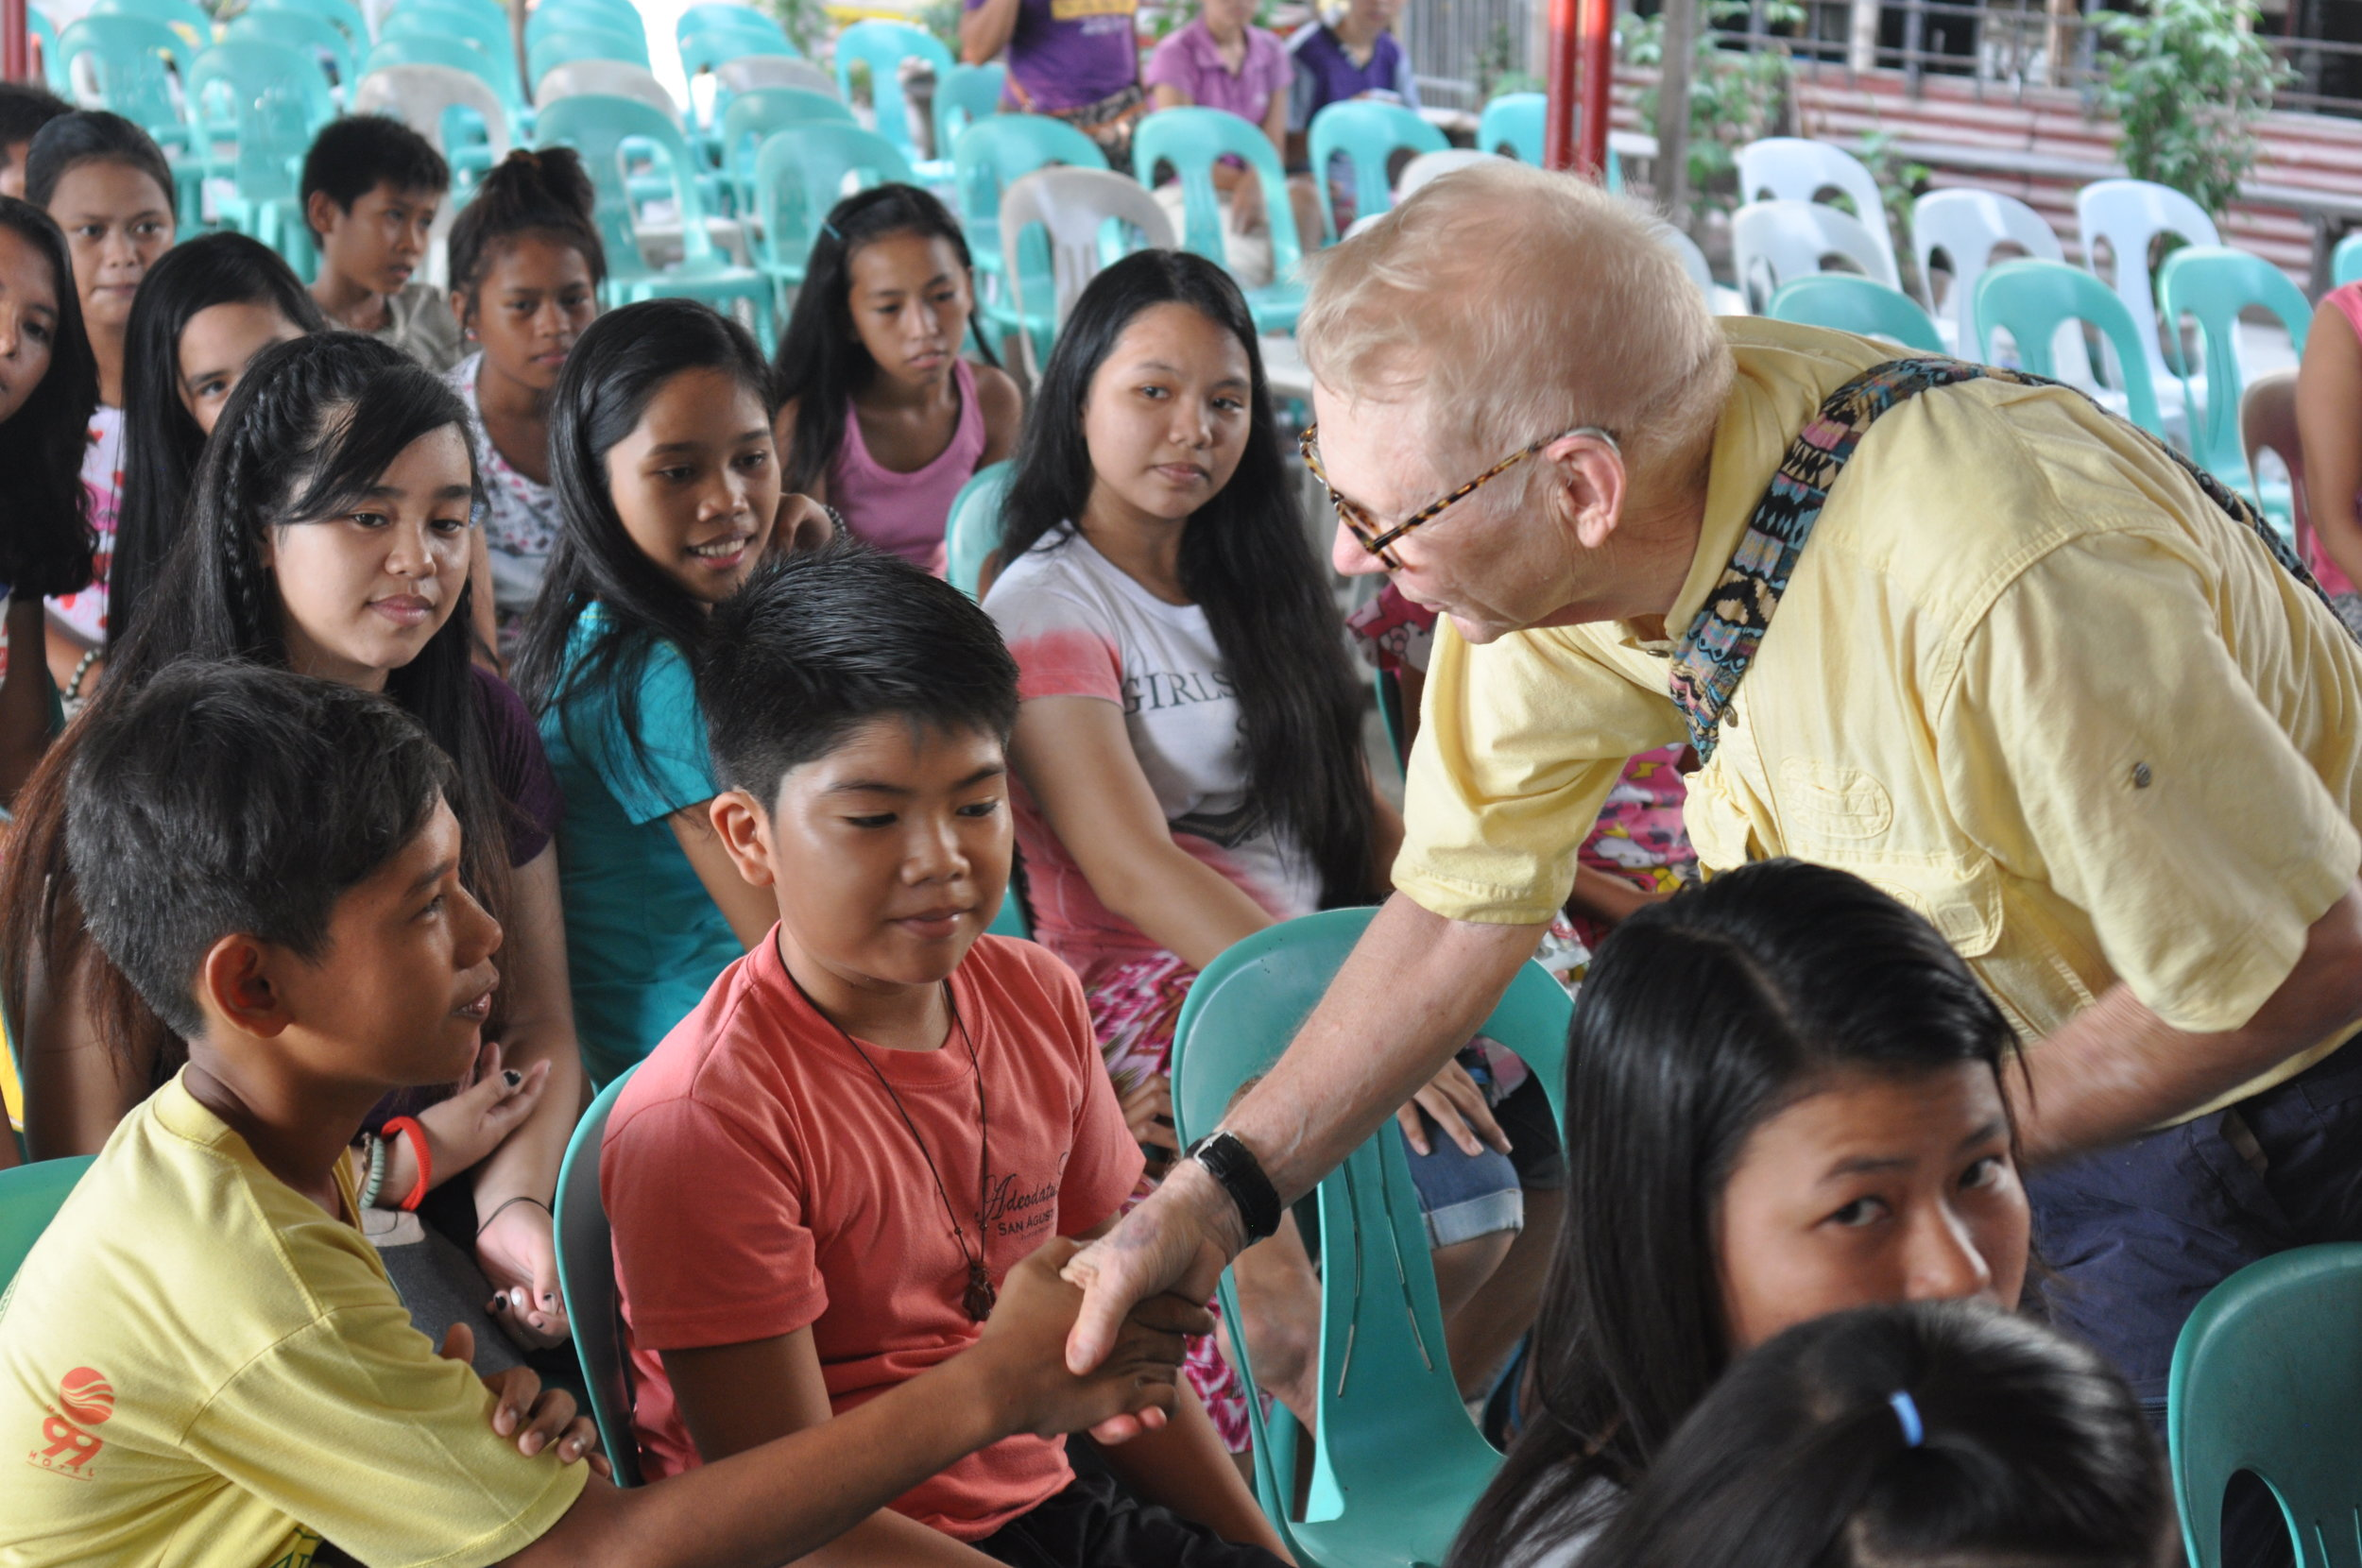 Bill with students at the Jay Pritzker Academy. Siem Reap,Cambodia.